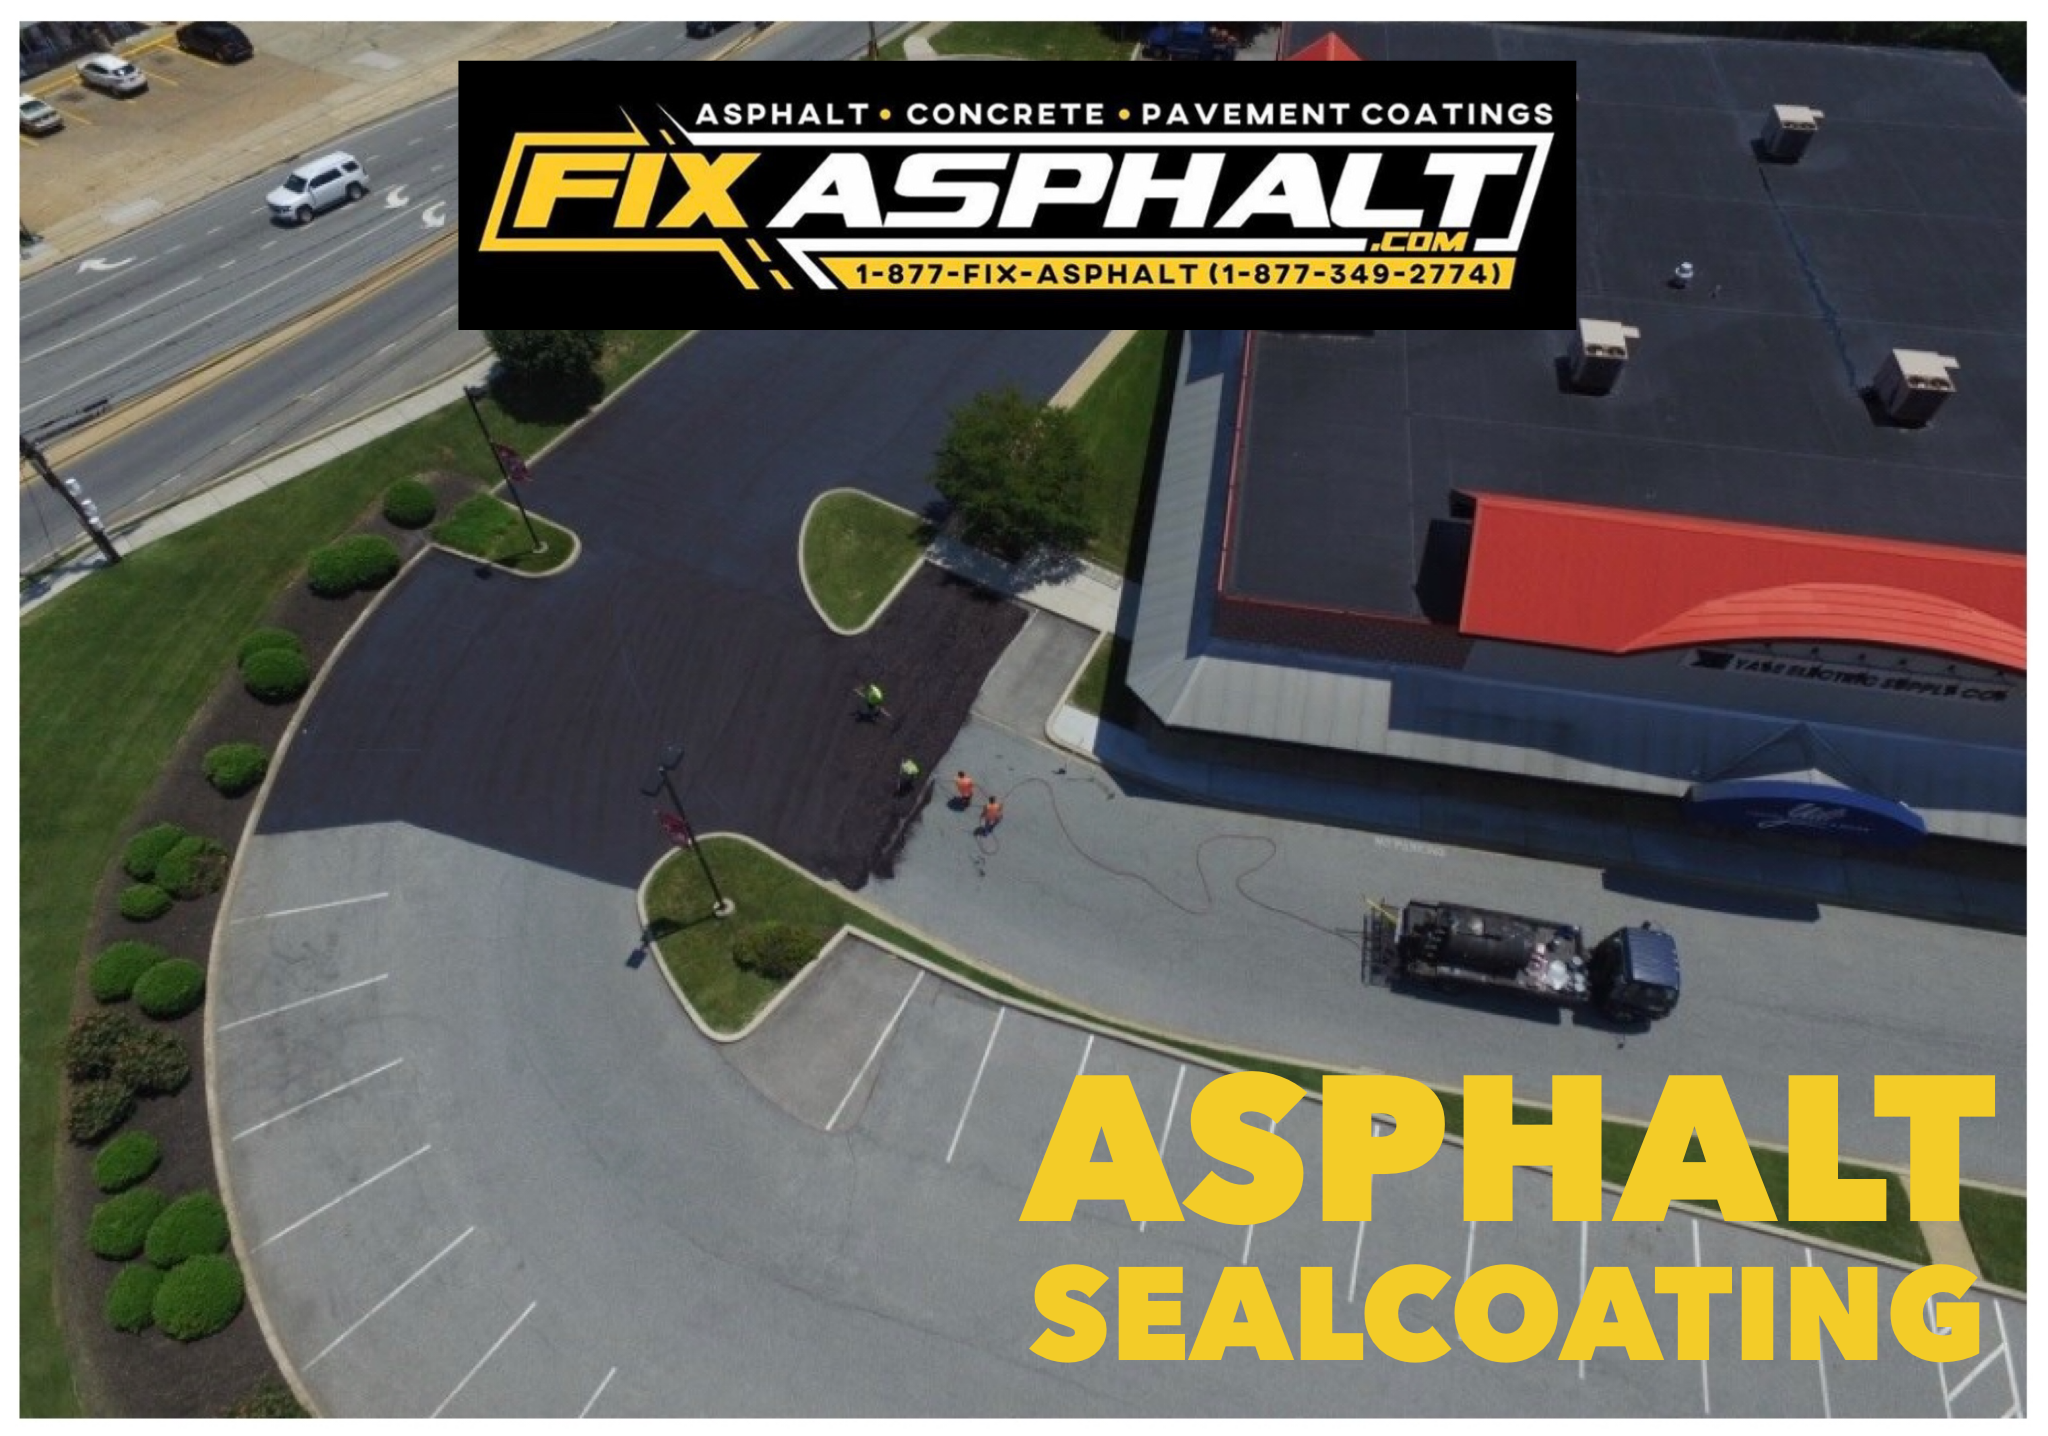 NJ Asphalt Sealcoating and Paving Company